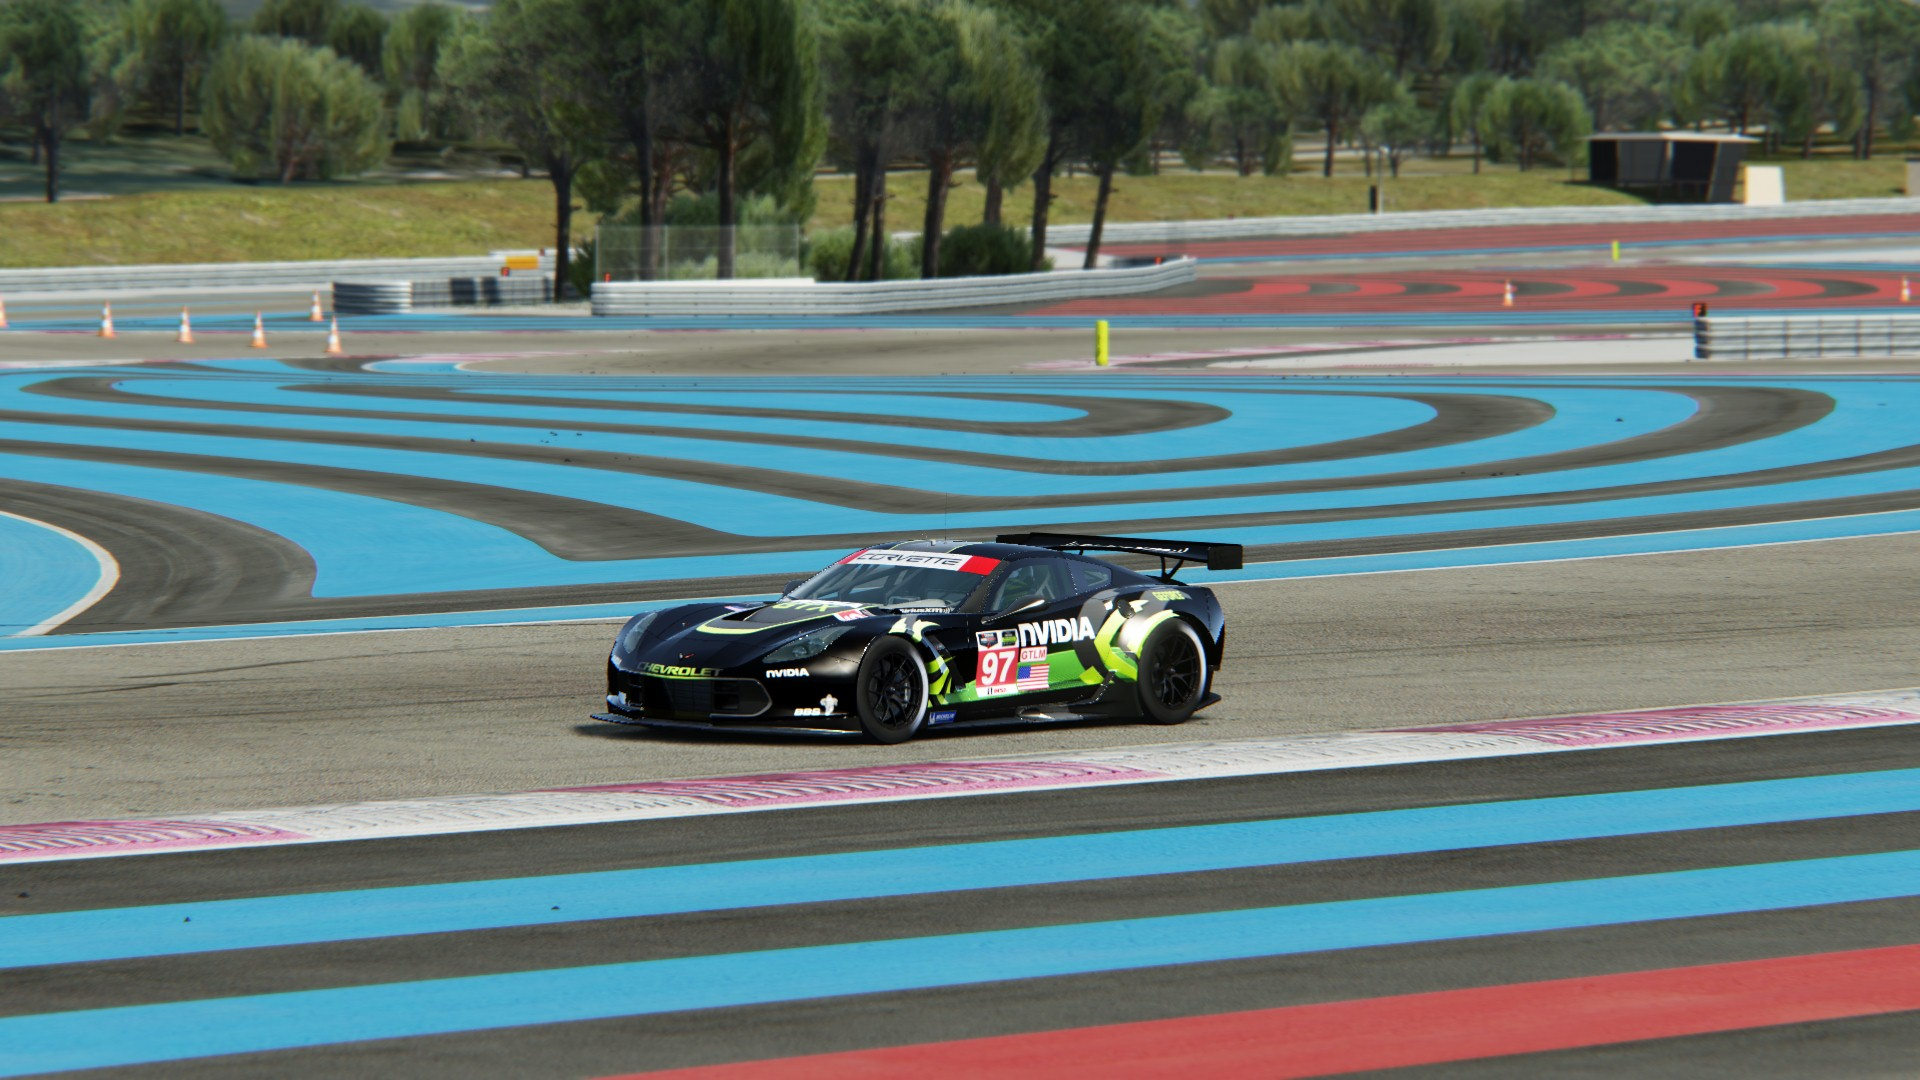 Circuito Paul Ricard : Paul ricard httt for ac u released u virtualr u